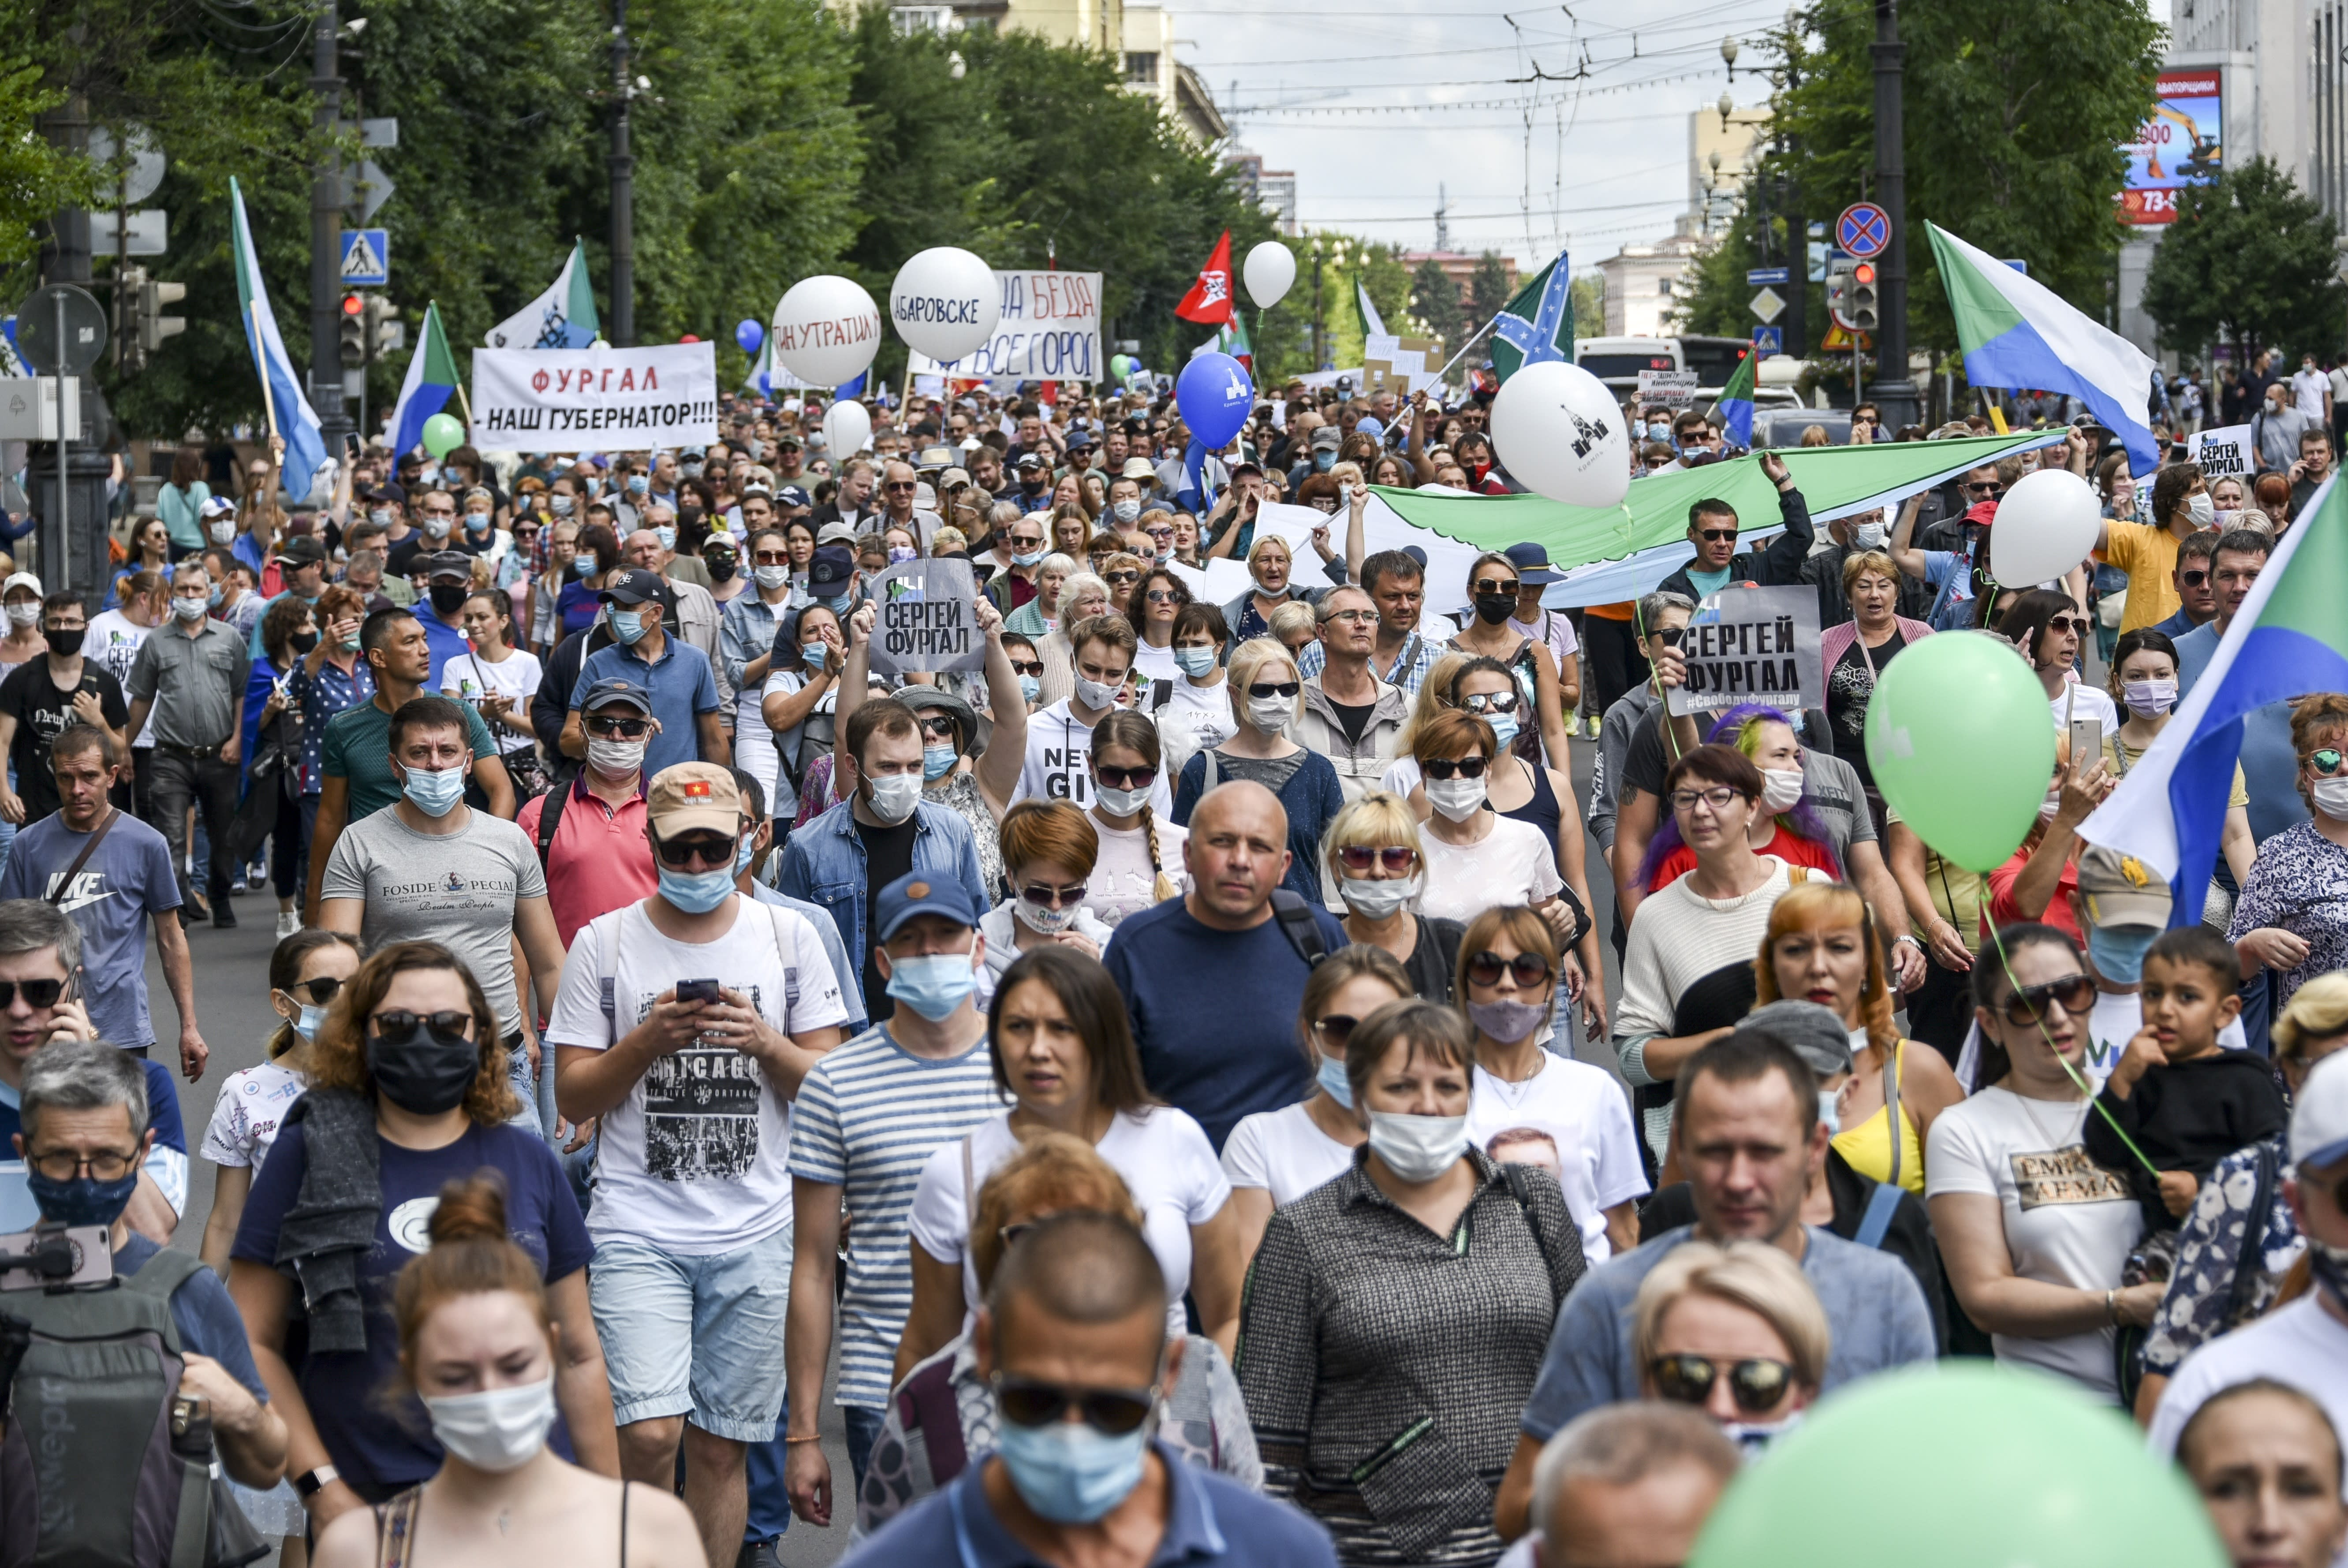 "People hold posters that read: ""I am, We are Sergei Furgal, Sergei Furgal our Governor"", during an unsanctioned protest in support of Sergei Furgal, the governor of the Khabarovsk region, in Khabarovsk, 6100 kilometers (3800 miles) east of Moscow, Russia, Saturday, Aug. 8, 2020. Thousands of demonstrators have again gathered in the major Russian Far East city of Khabarovsk to denounce the arrest of the region's governor a month ago. Sergei Furgal was arrested on suspicion of involvement in murders and taken to jail in Moscow. The estimated 3,000 demonstrators in Khabarovsk protested the charges and want him returned to the city for trial. (AP Photo/Igor Volkov)"